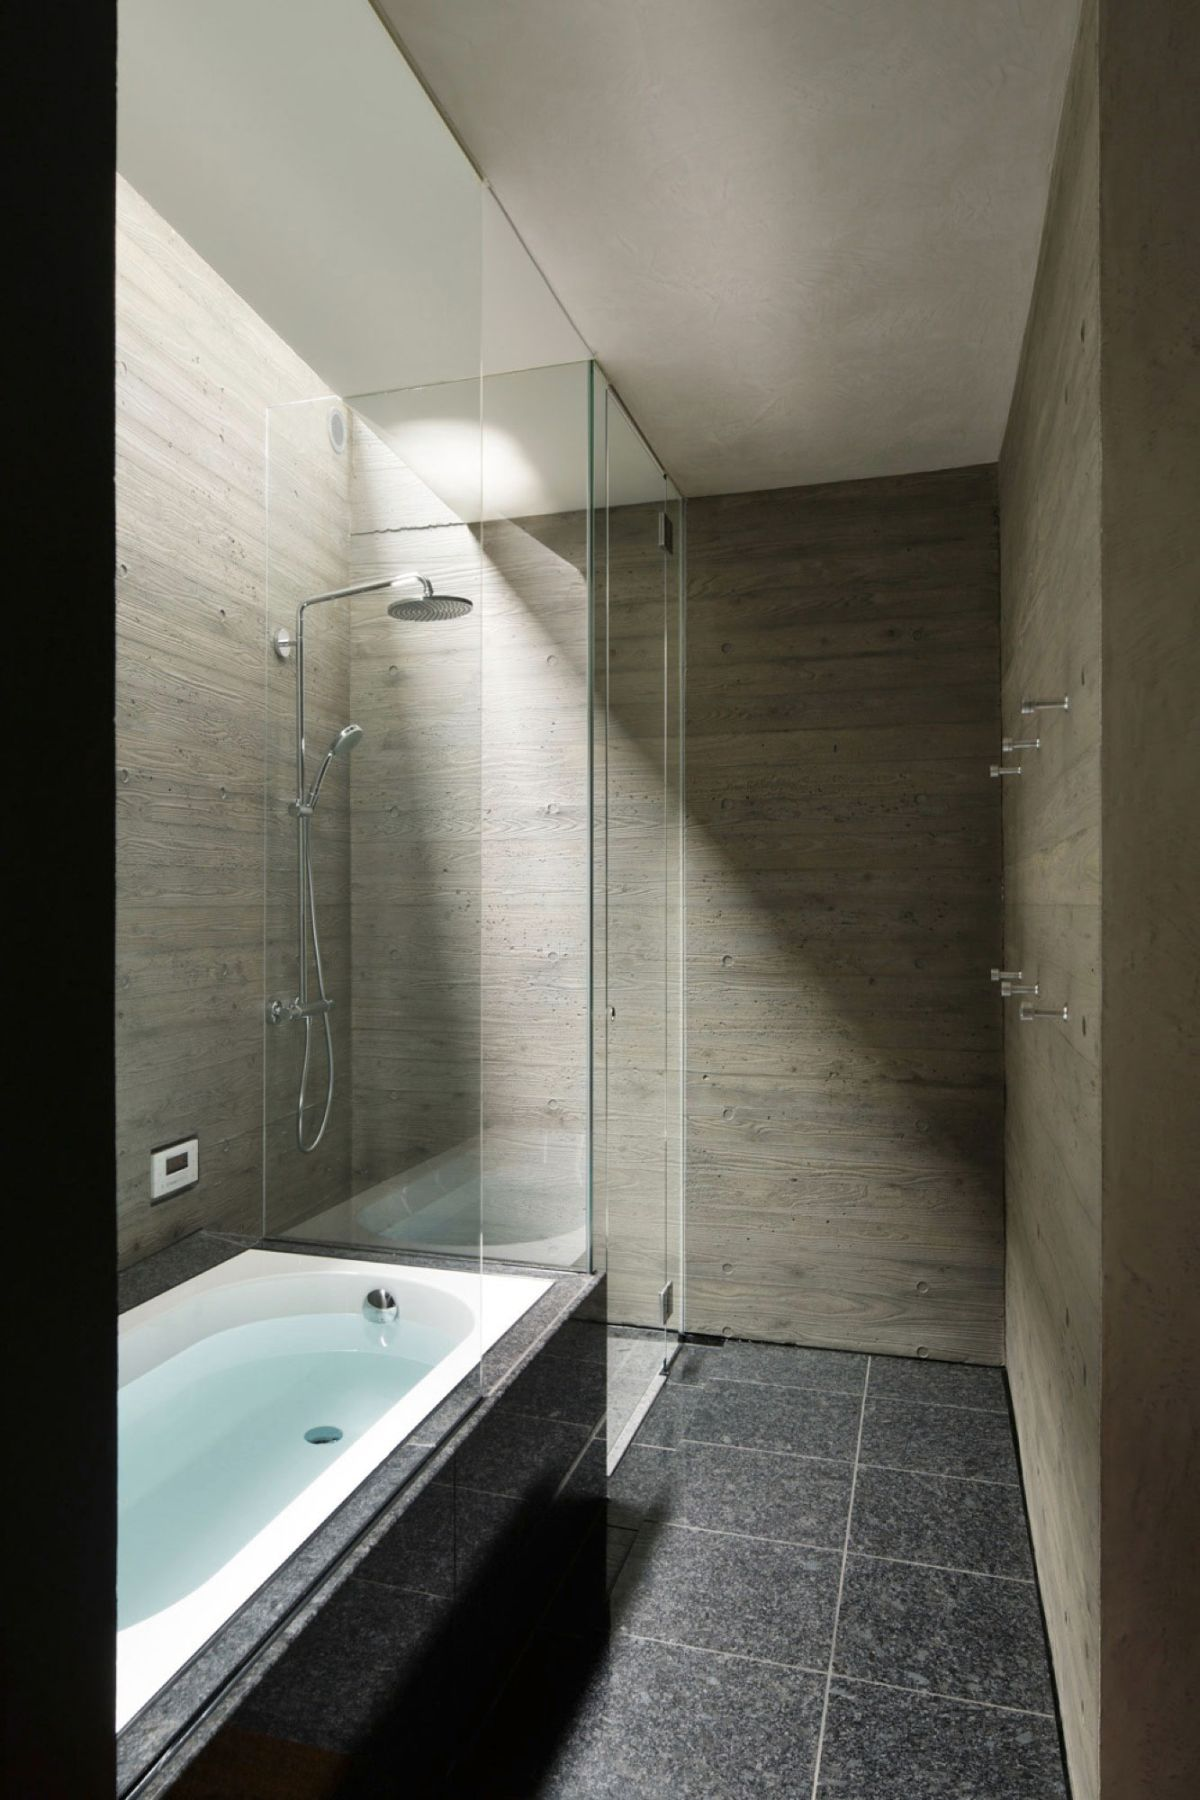 The SRK residence in Tokyo features a glass walk-in shower